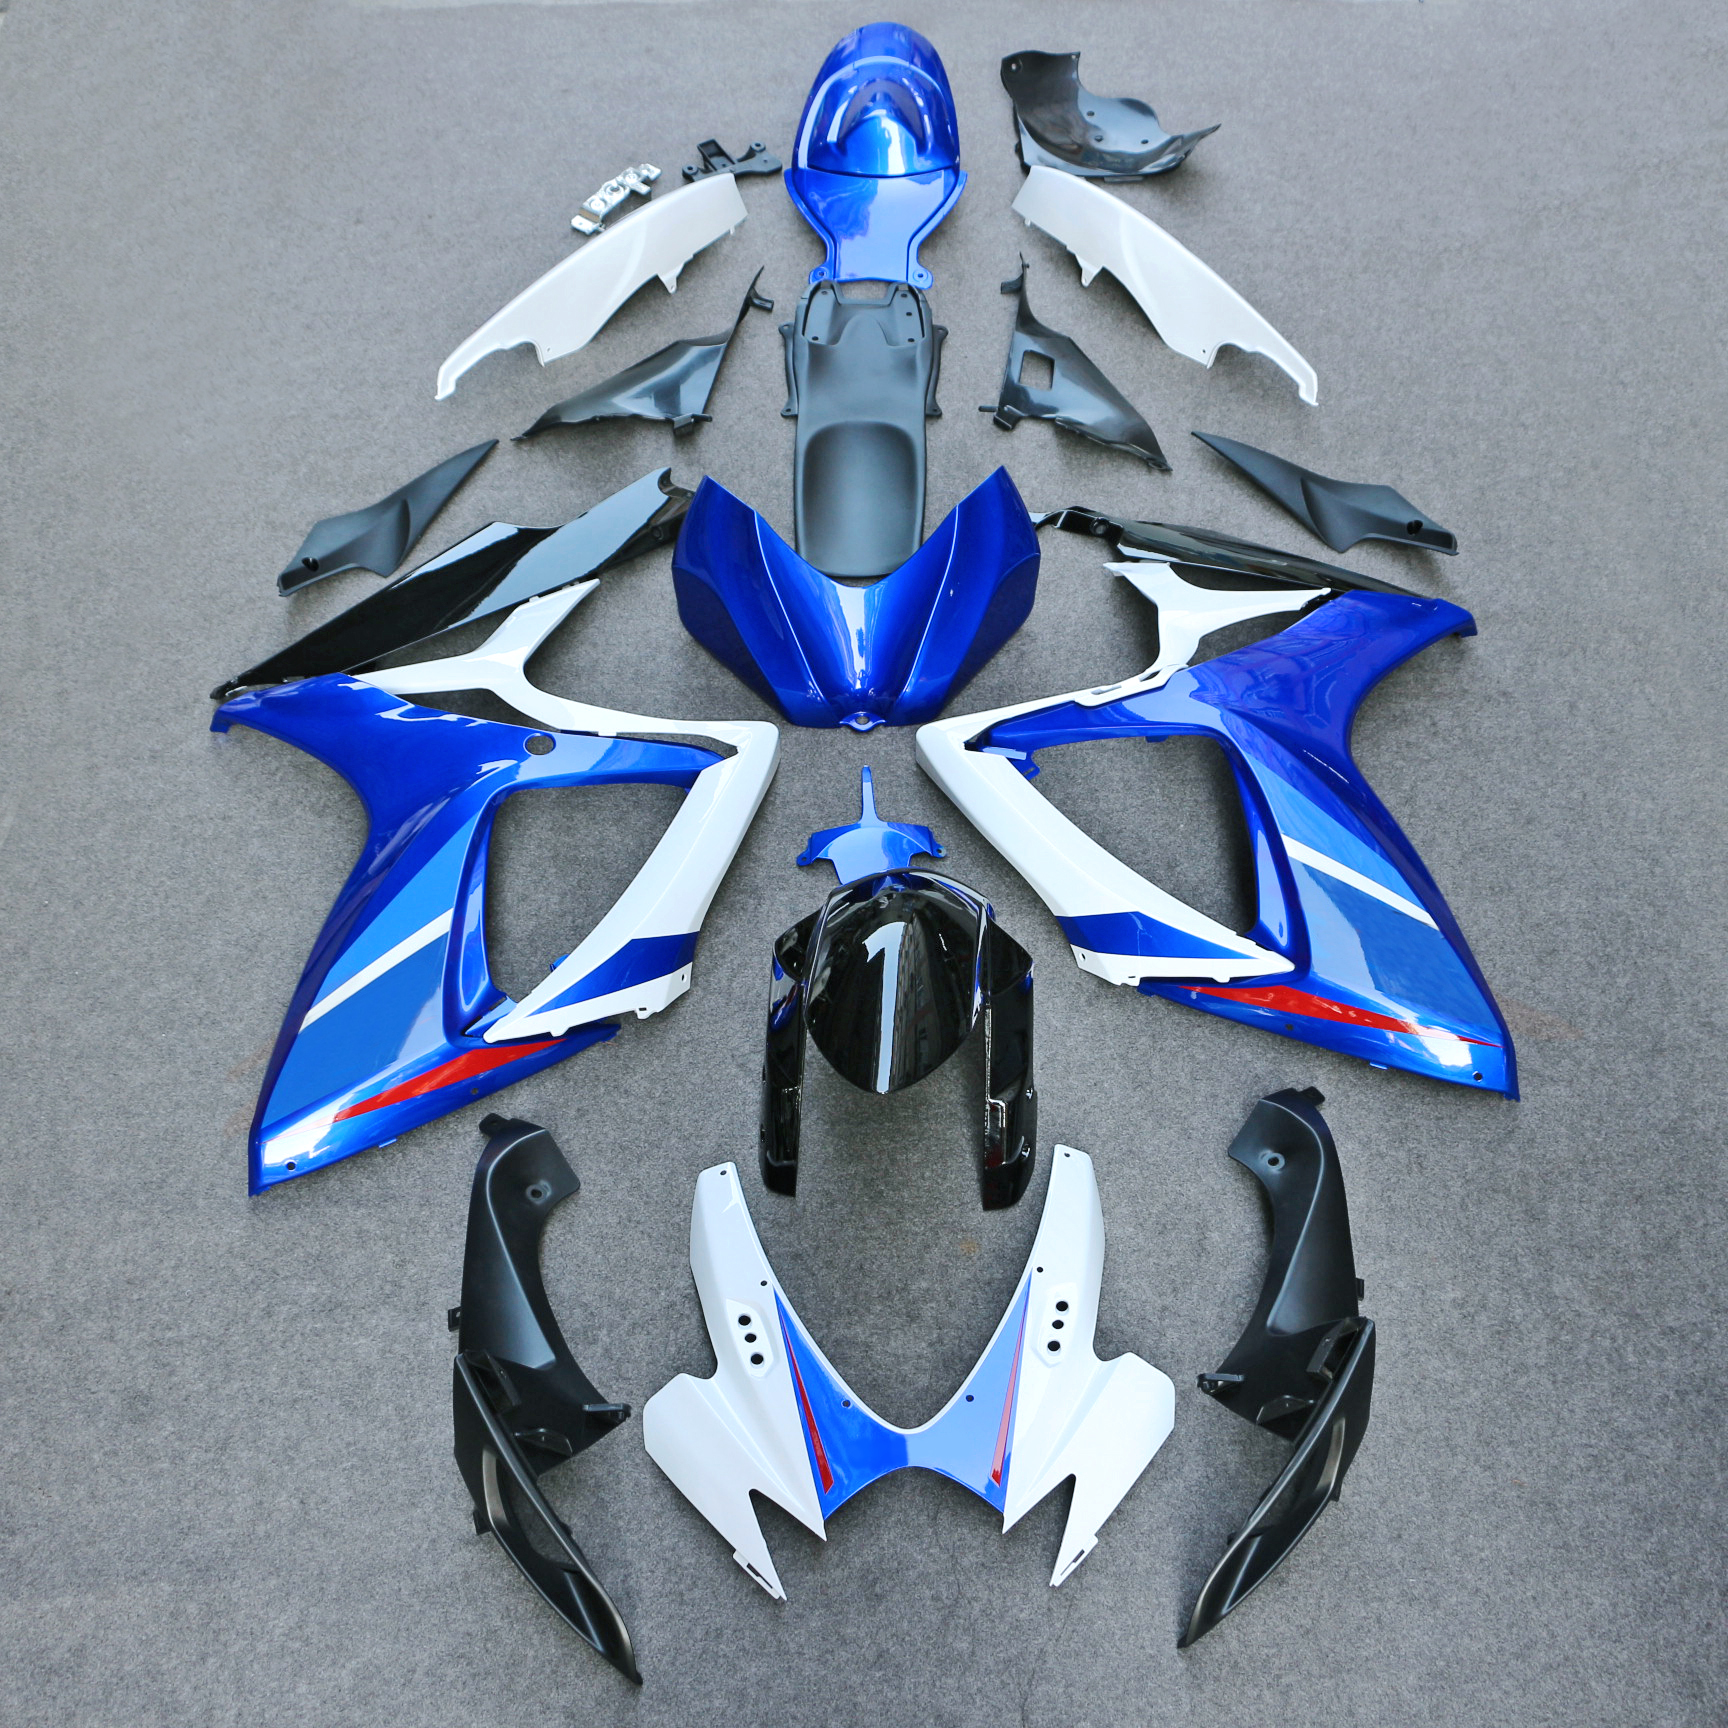 <font><b>fairings</b></font> for SUZUKI <font><b>GSXR</b></font> <font><b>600</b></font> 750 K6 K7 2006 <font><b>2007</b></font> matte black blue white <font><b>fairing</b></font> kit GSXR600 GSXR750 06 07 image